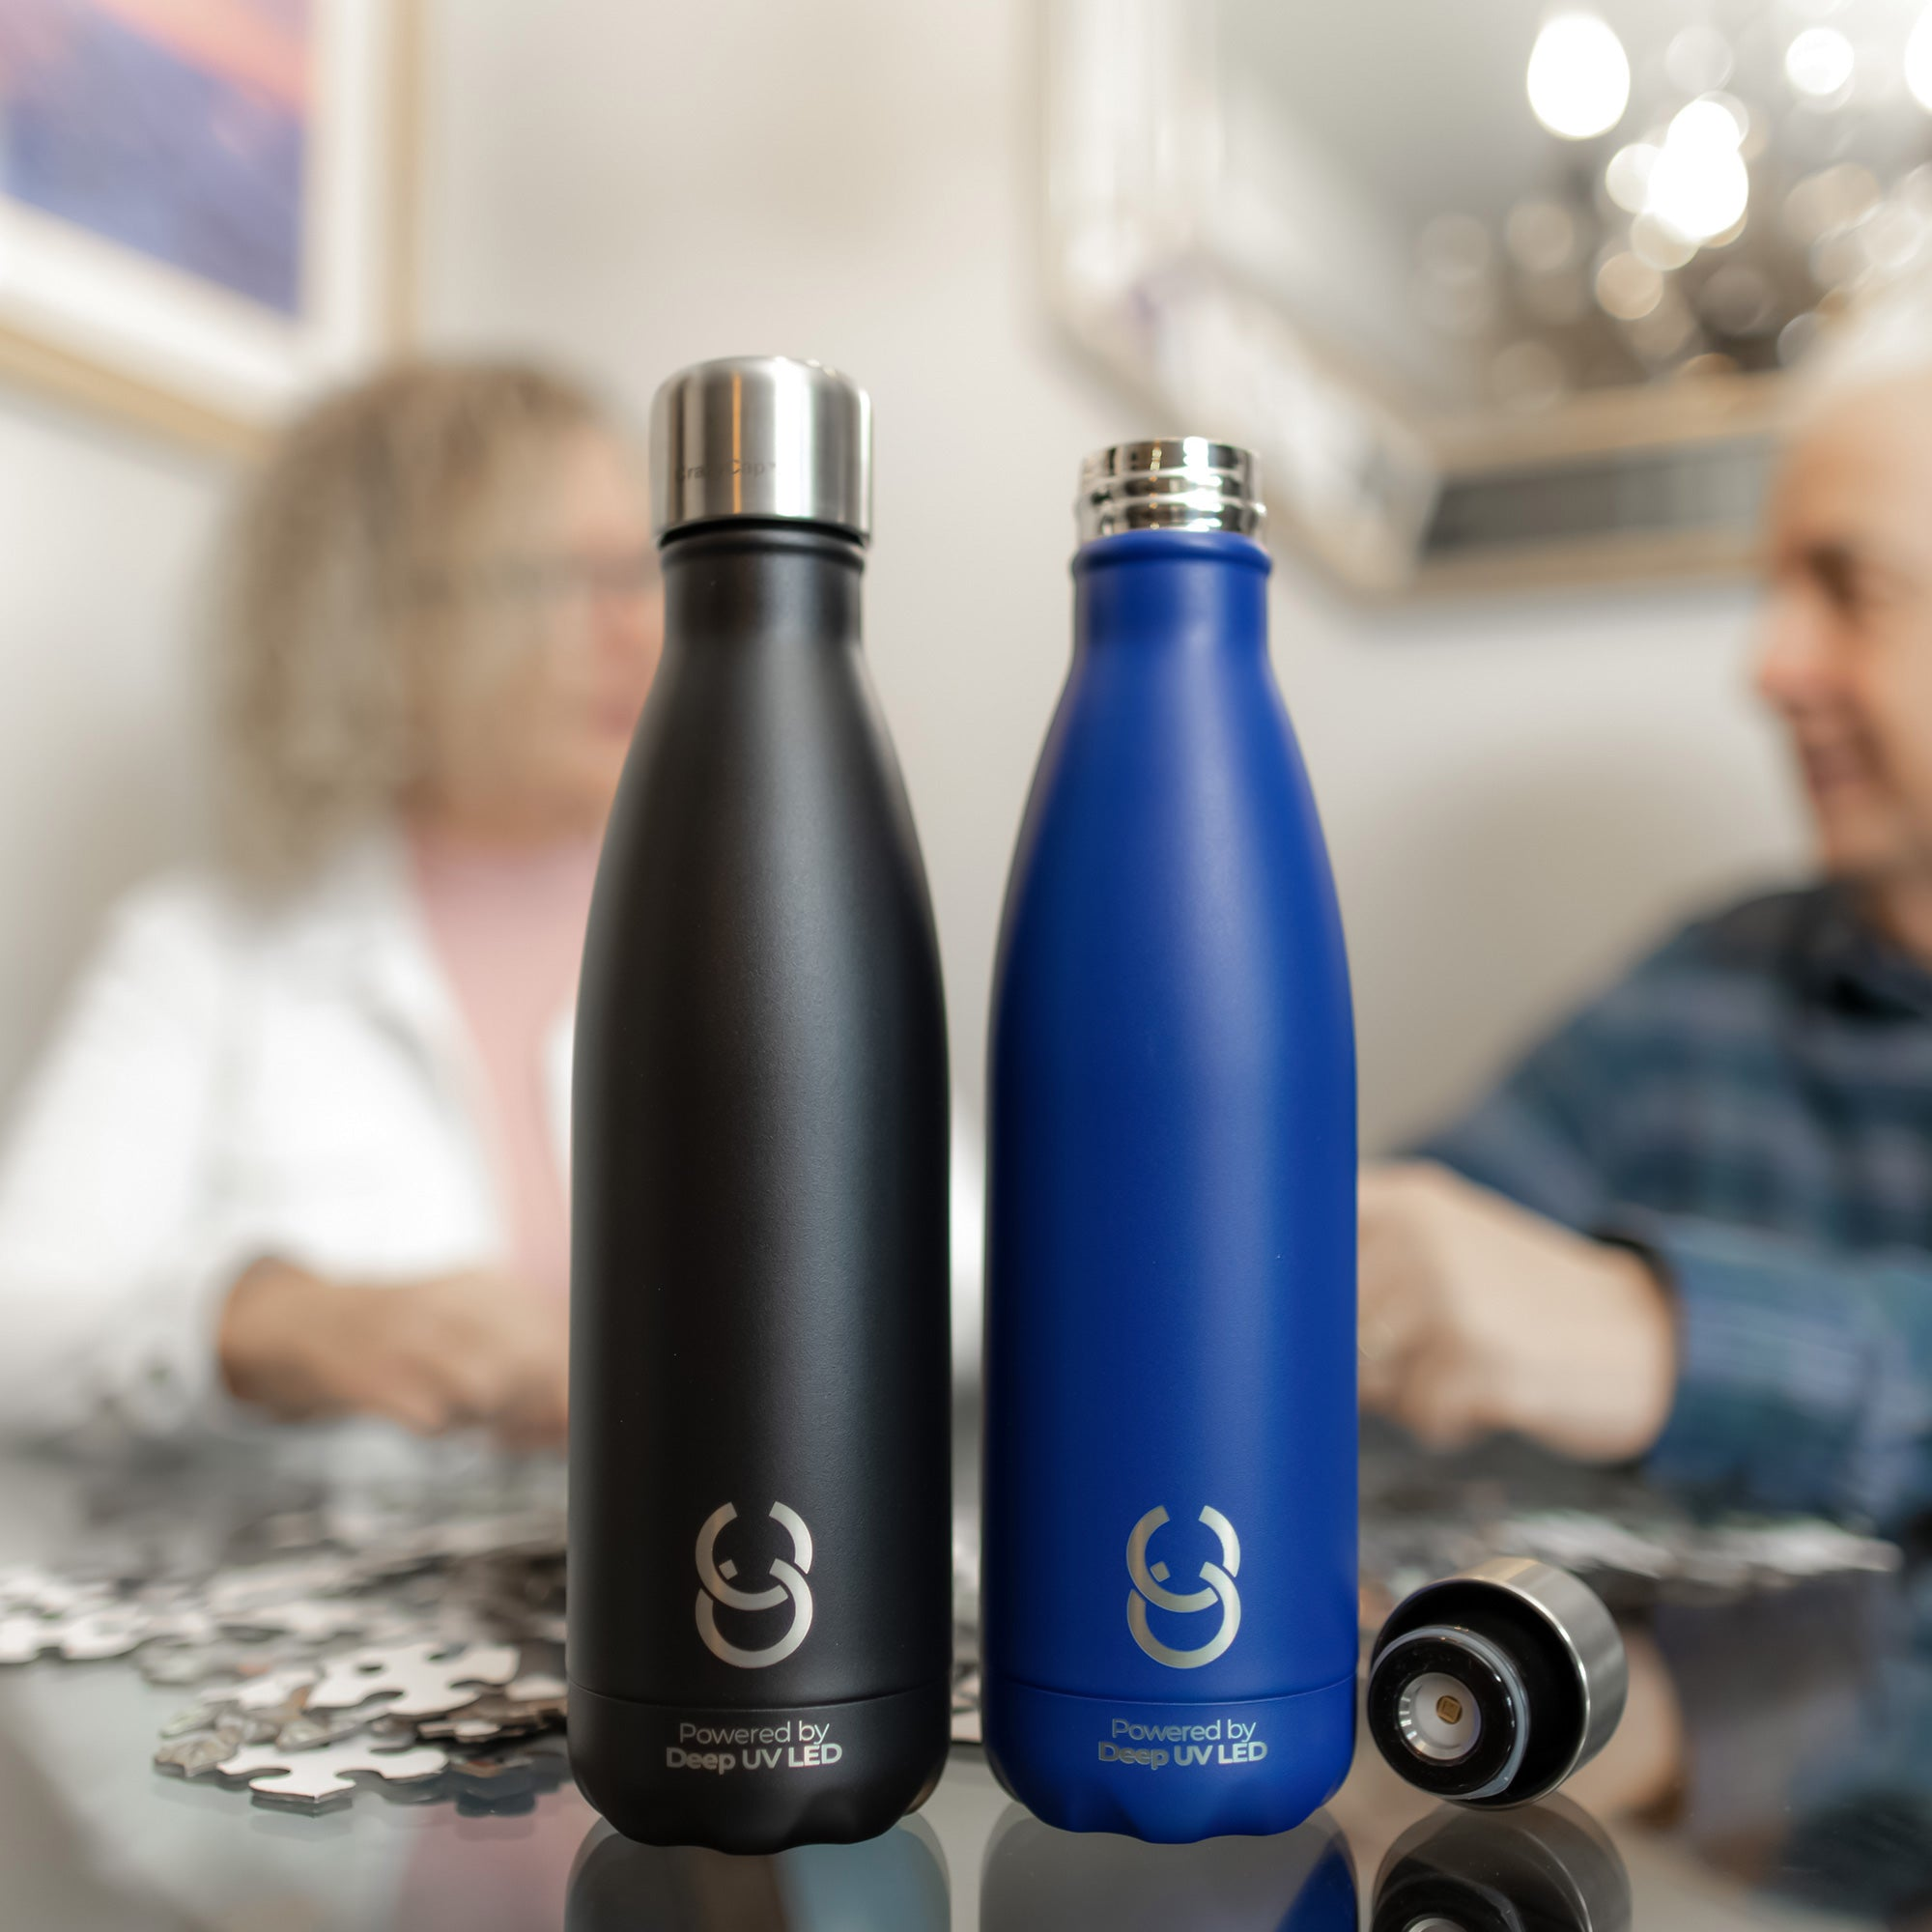 Crazy Cap CrazyCap® Self-Cleaning Bottle Twin Pack w/ UV-C Water Purifier (17oz) in Onyx/sapphire, Size 17 oz